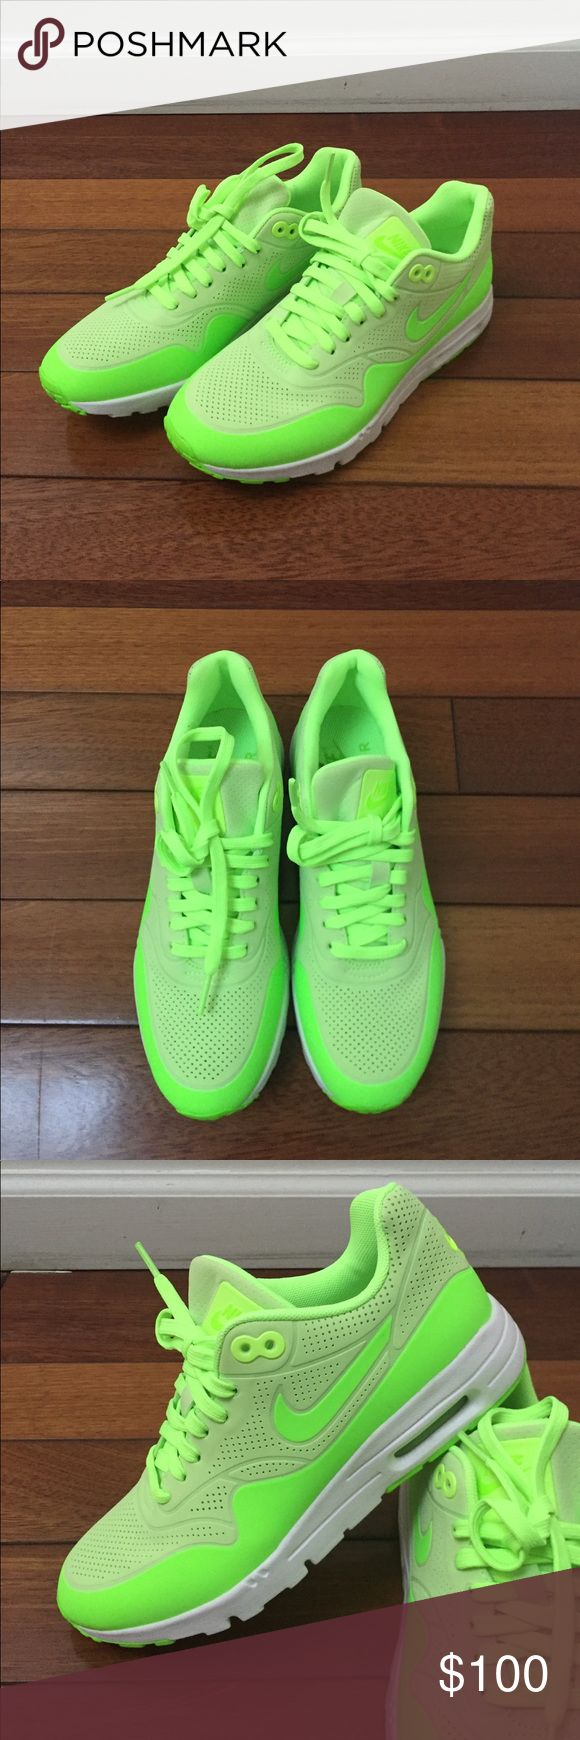 NEW Nike Neon Green Air Max Ultra Moire Sz 7 NEW Nike Neon Green Air Max Ultra Moire Sz 7. No box. Never worn. Awesome neon green color. Nike Shoes Sneakers